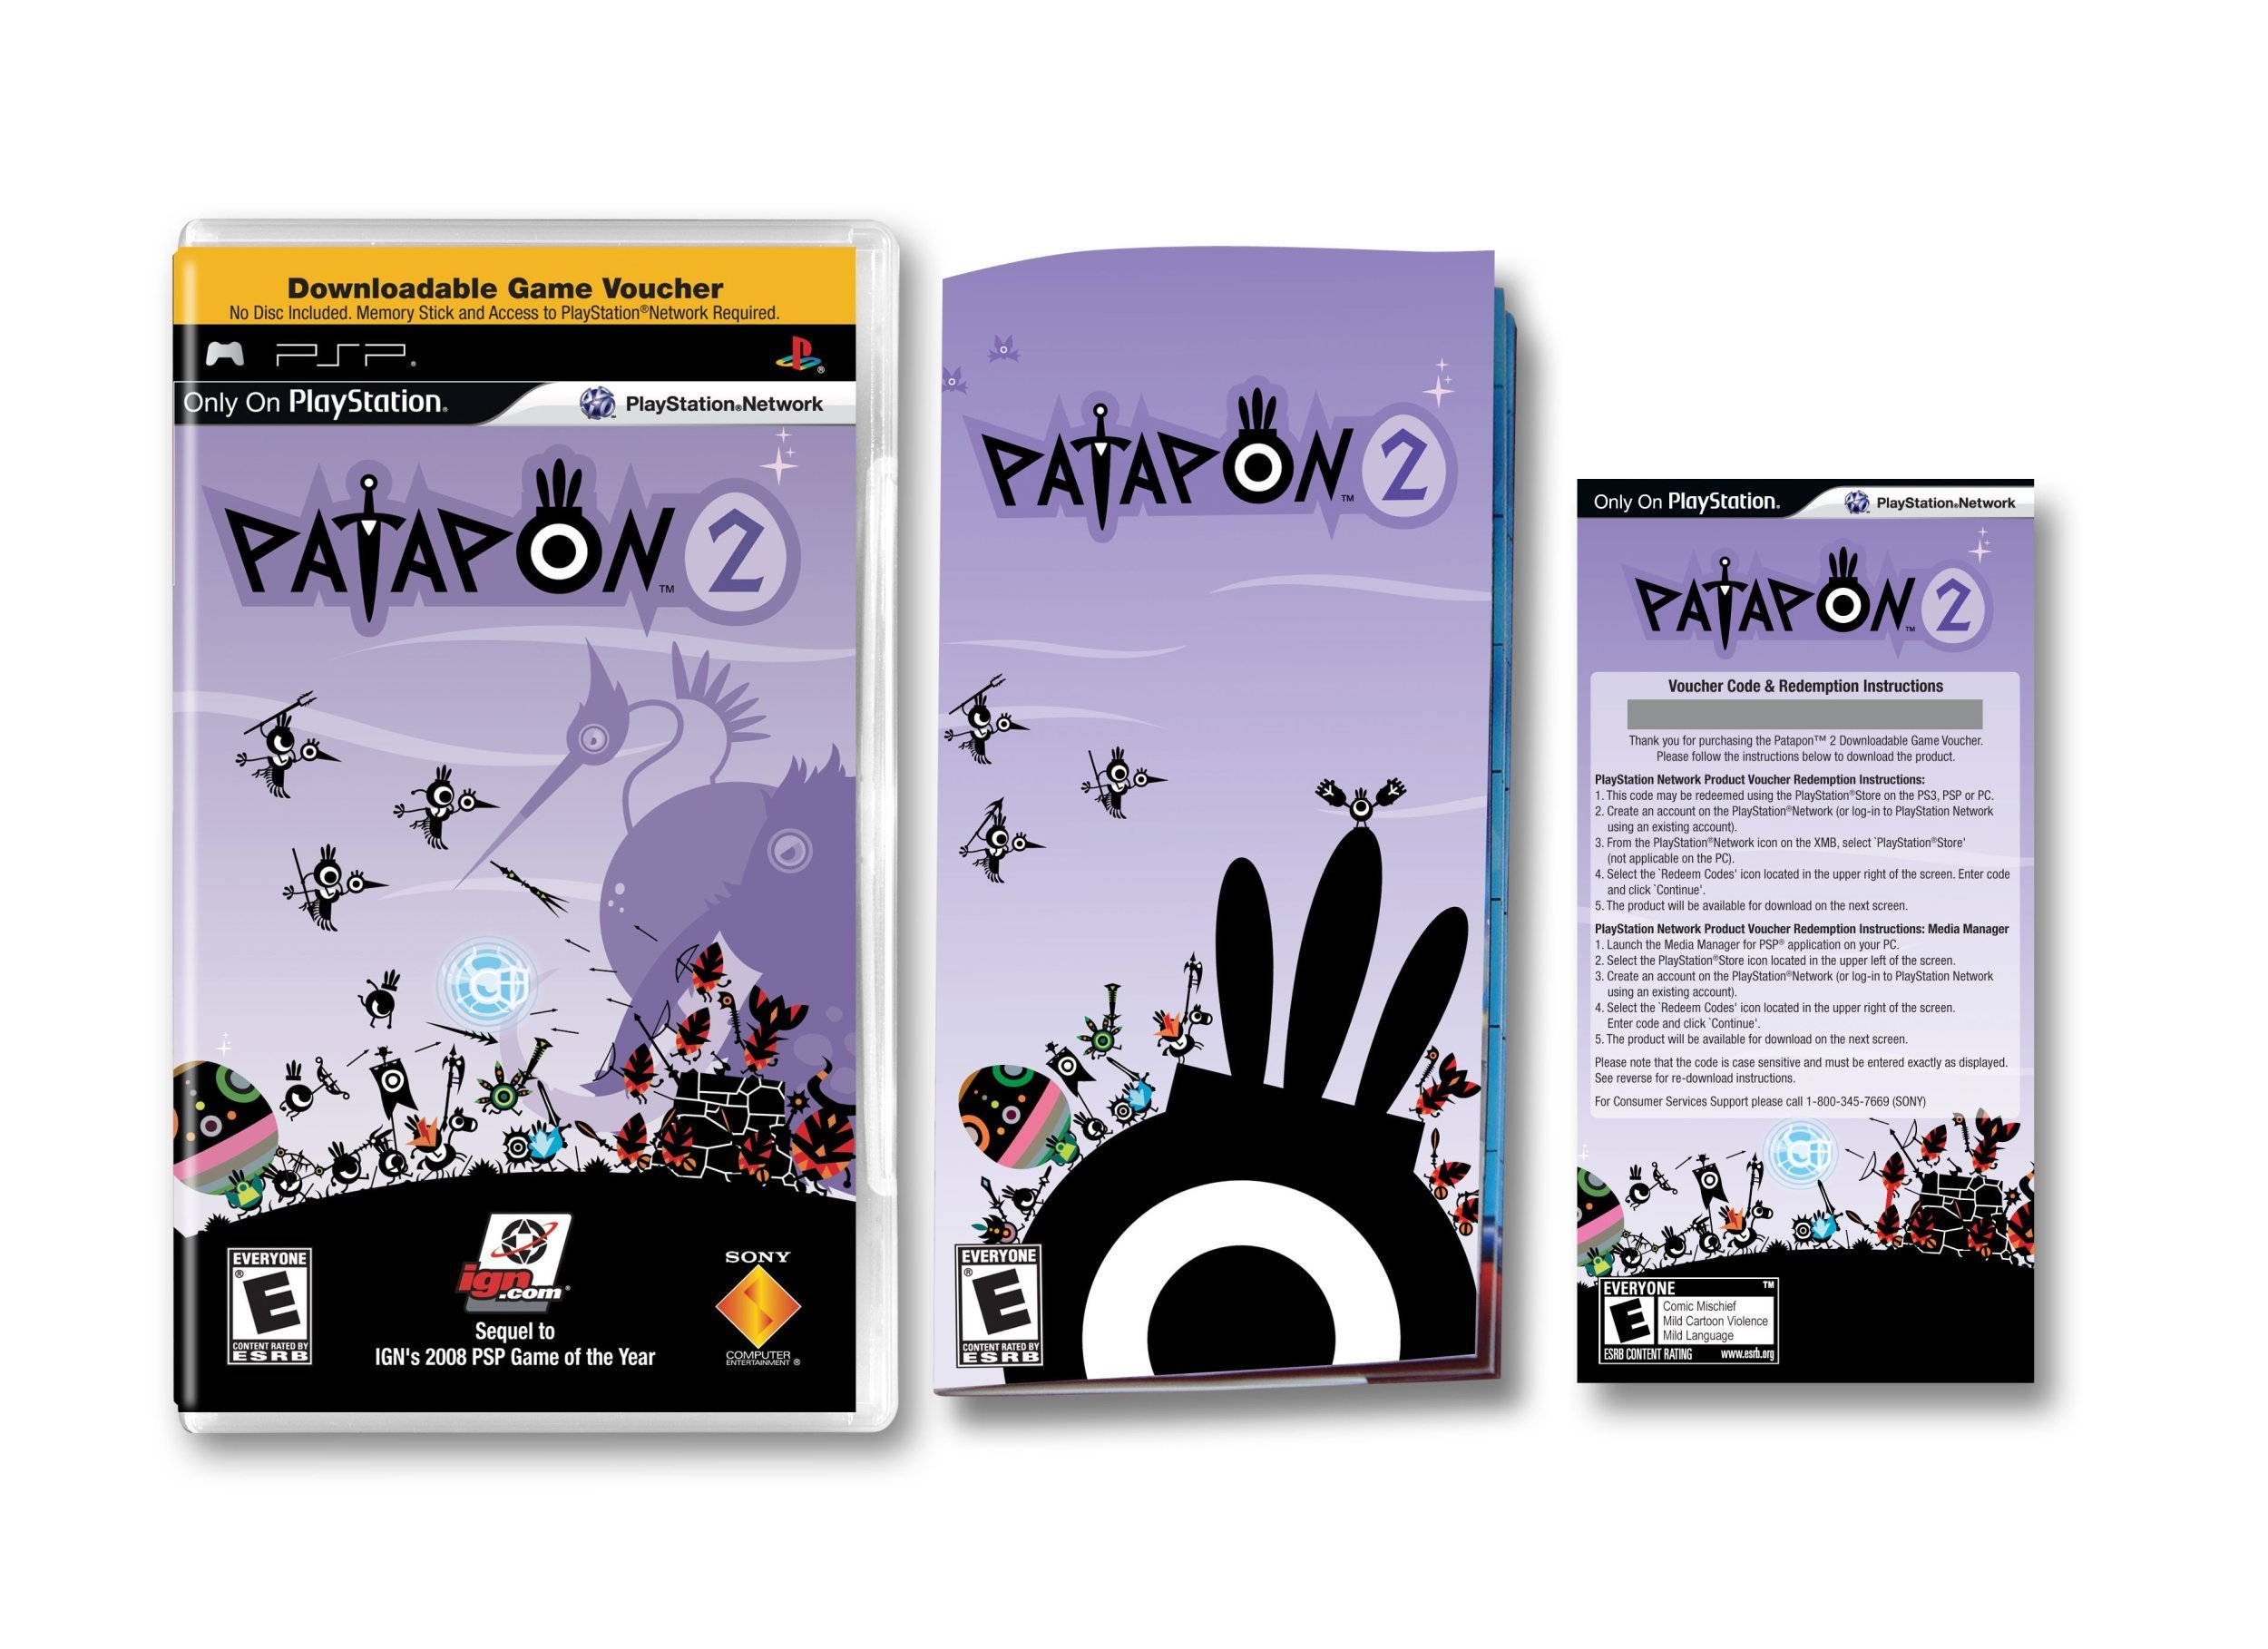 Patapon 2 (Downloadable Game Voucher) - Sony PSP by Sony (Image #4)